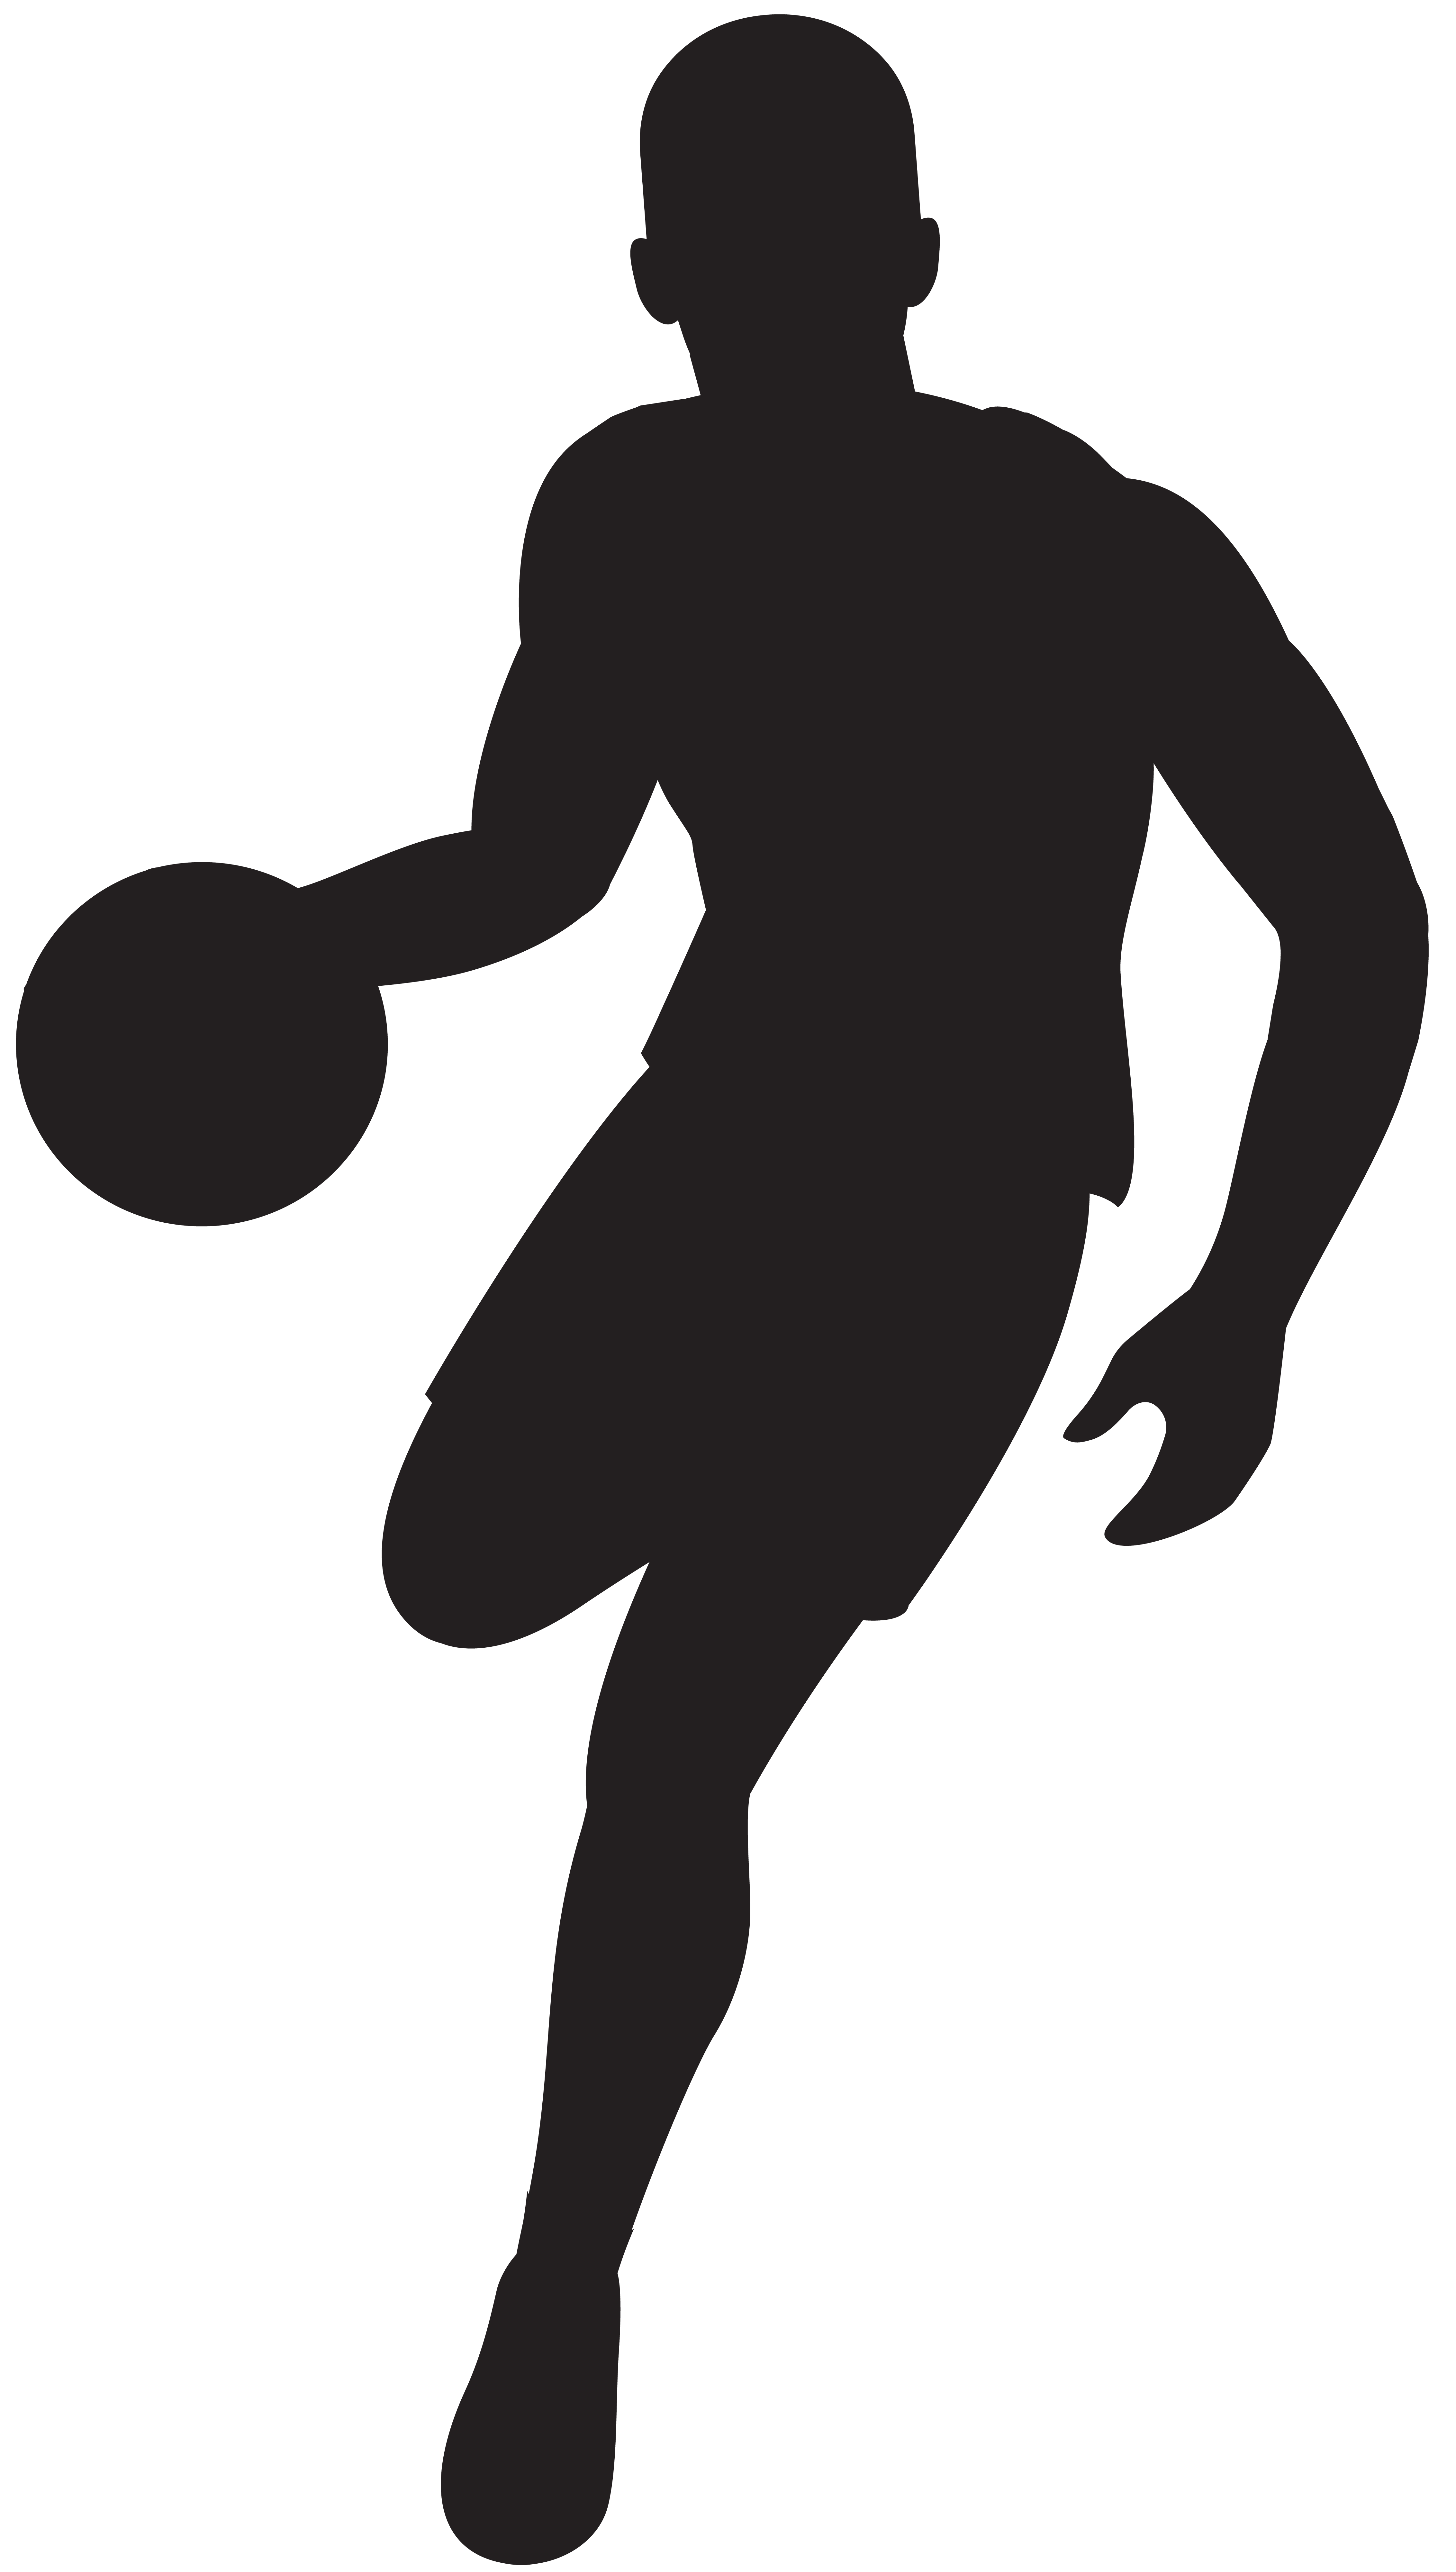 clipart basketball silhouette